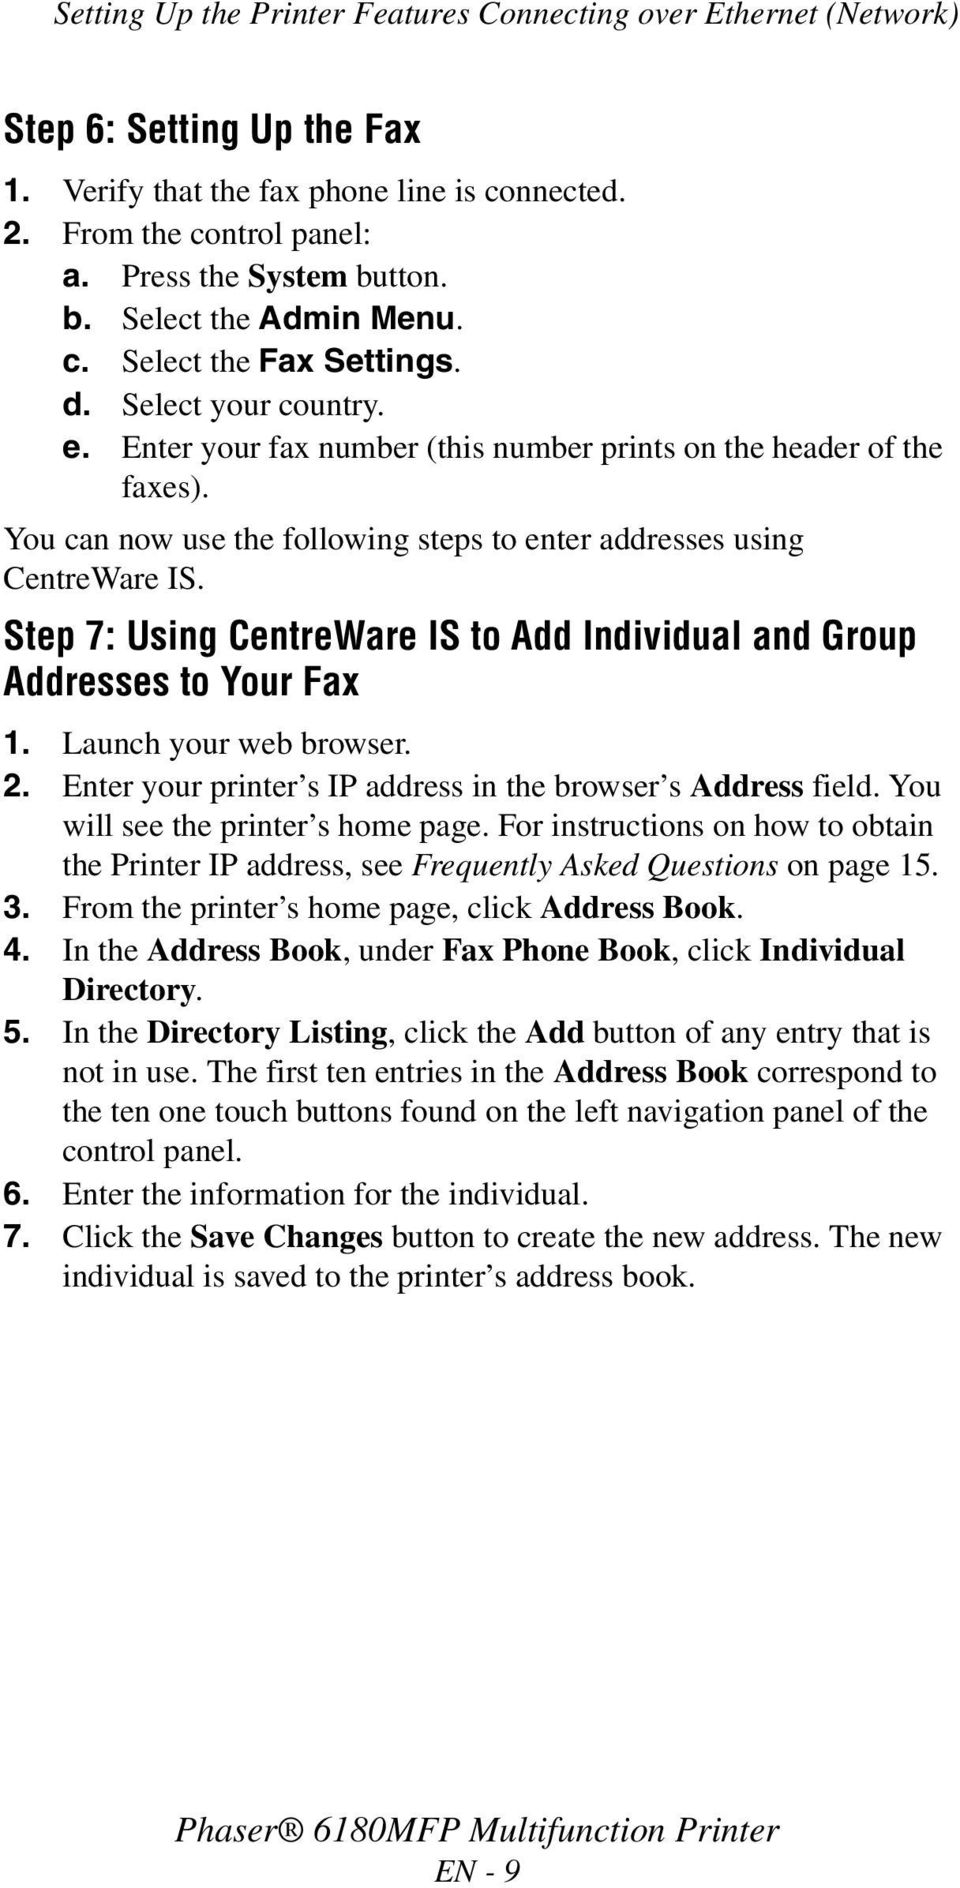 You can now use the following steps to enter addresses using CentreWare IS. Step 7: Using CentreWare IS to Add Individual and Group Addresses to Your Fax 1. Launch your web browser. 2.